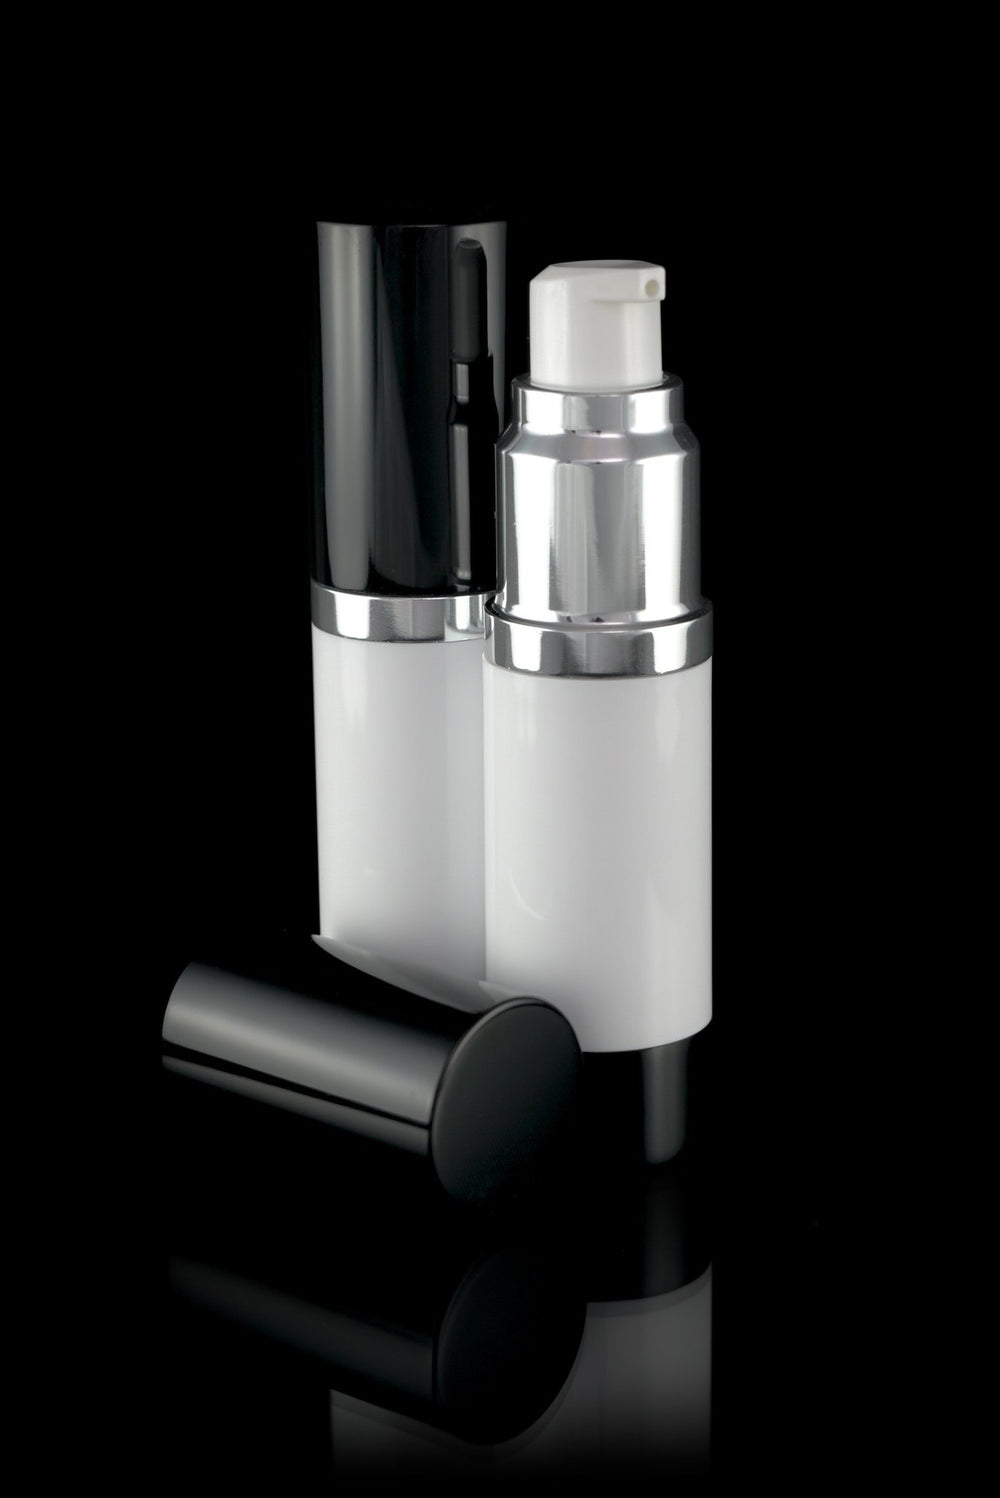 Airless Pump Bottle - Luxe 15 ML Airless Bottle Glossy Black With White Bottle